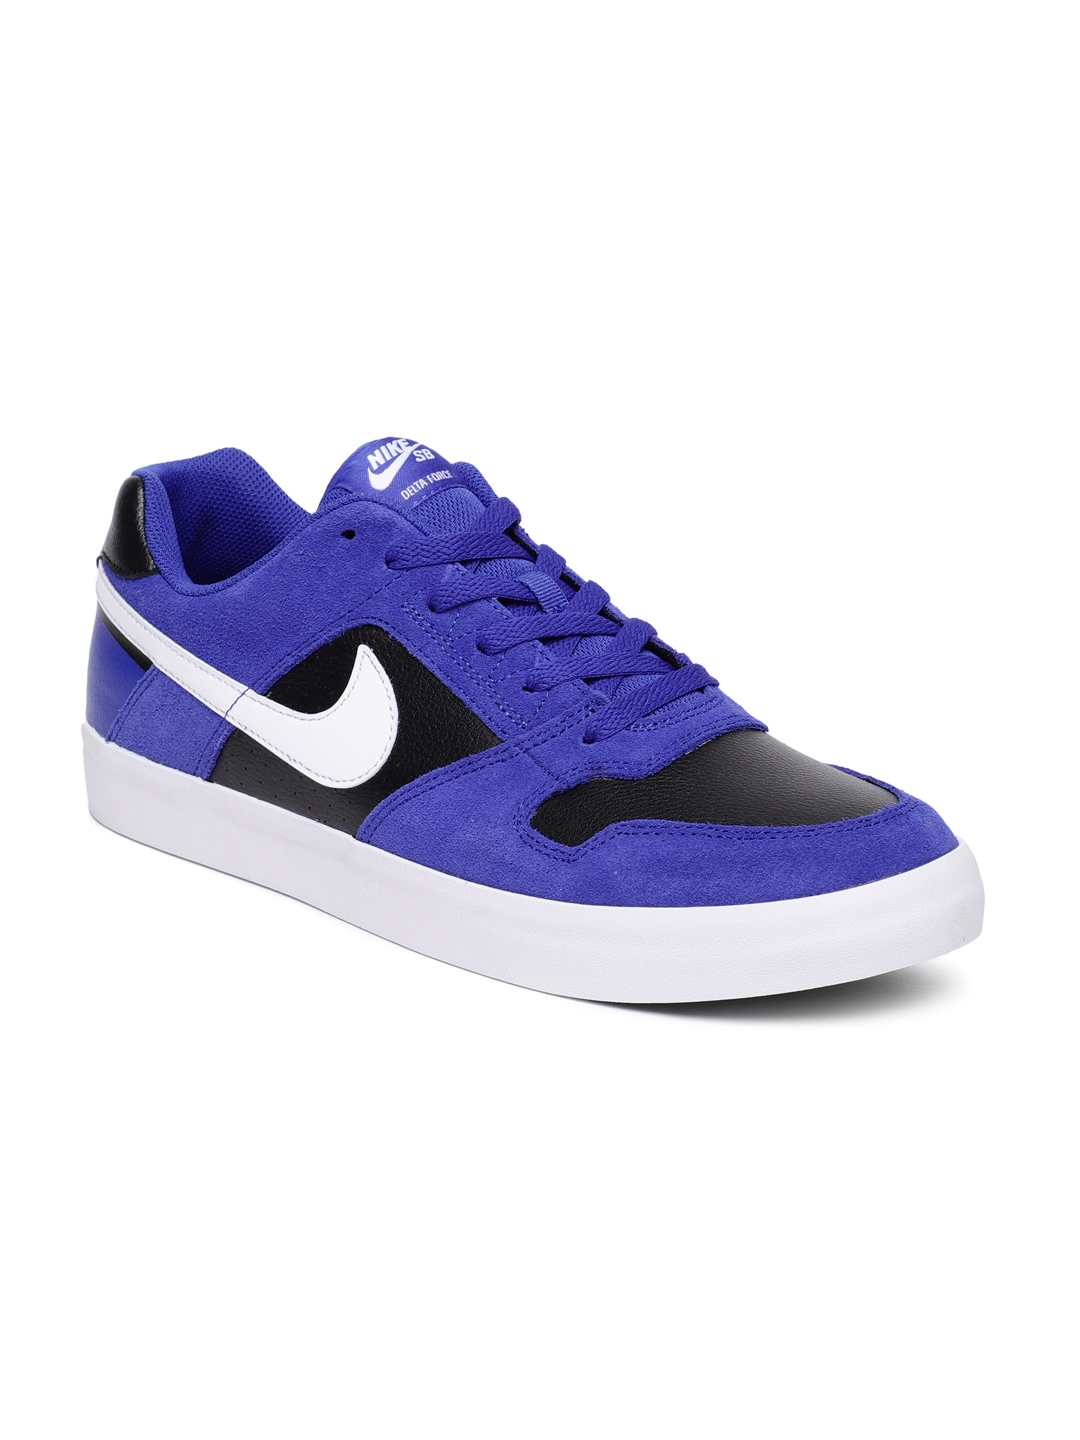 34e69afbaa04 Buy Nike Men Blue   Black SB Delta Force Vulc Leather Skateboarding ...